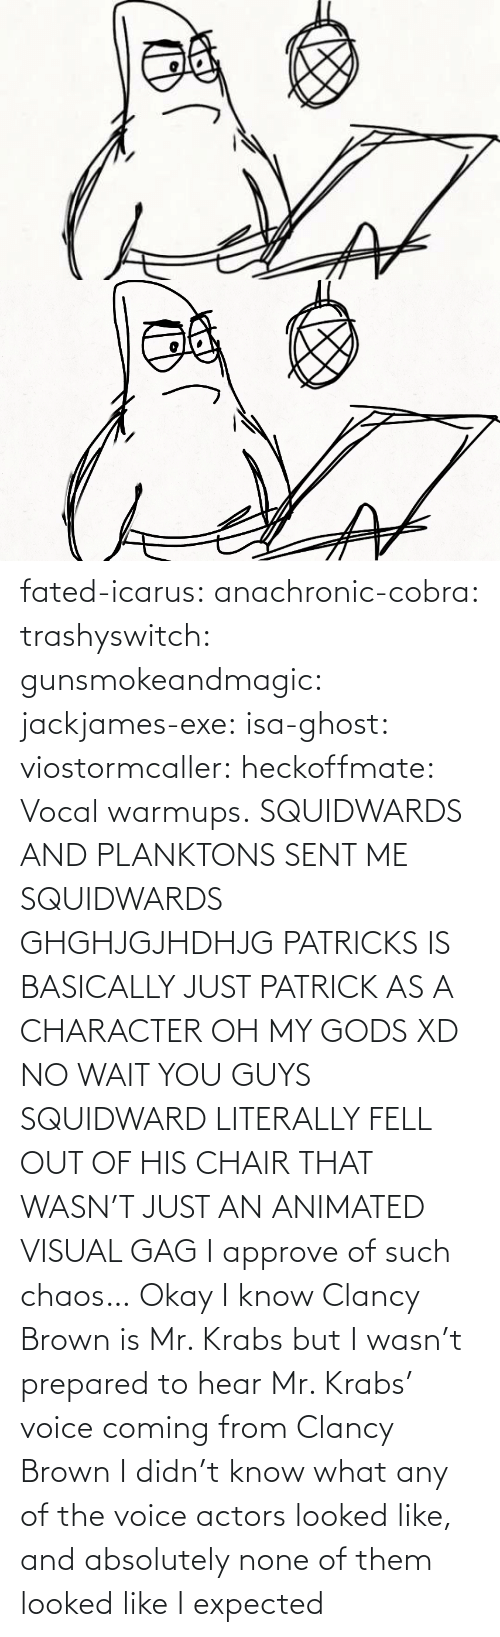 what: fated-icarus:  anachronic-cobra: trashyswitch:  gunsmokeandmagic:  jackjames-exe:  isa-ghost:   viostormcaller:  heckoffmate: Vocal warmups. SQUIDWARDS AND PLANKTONS SENT ME  SQUIDWARDS GHGHJGJHDHJG   PATRICKS IS BASICALLY JUST PATRICK AS A CHARACTER OH MY GODS XD   NO WAIT YOU GUYS SQUIDWARD LITERALLY FELL OUT OF HIS CHAIR THAT WASN'T JUST AN ANIMATED VISUAL GAG    I approve of such chaos…    Okay I know Clancy Brown is Mr. Krabs but I wasn't prepared to hear Mr. Krabs' voice coming from Clancy Brown    I didn't know what any of the voice actors looked like, and absolutely none of them looked like I expected